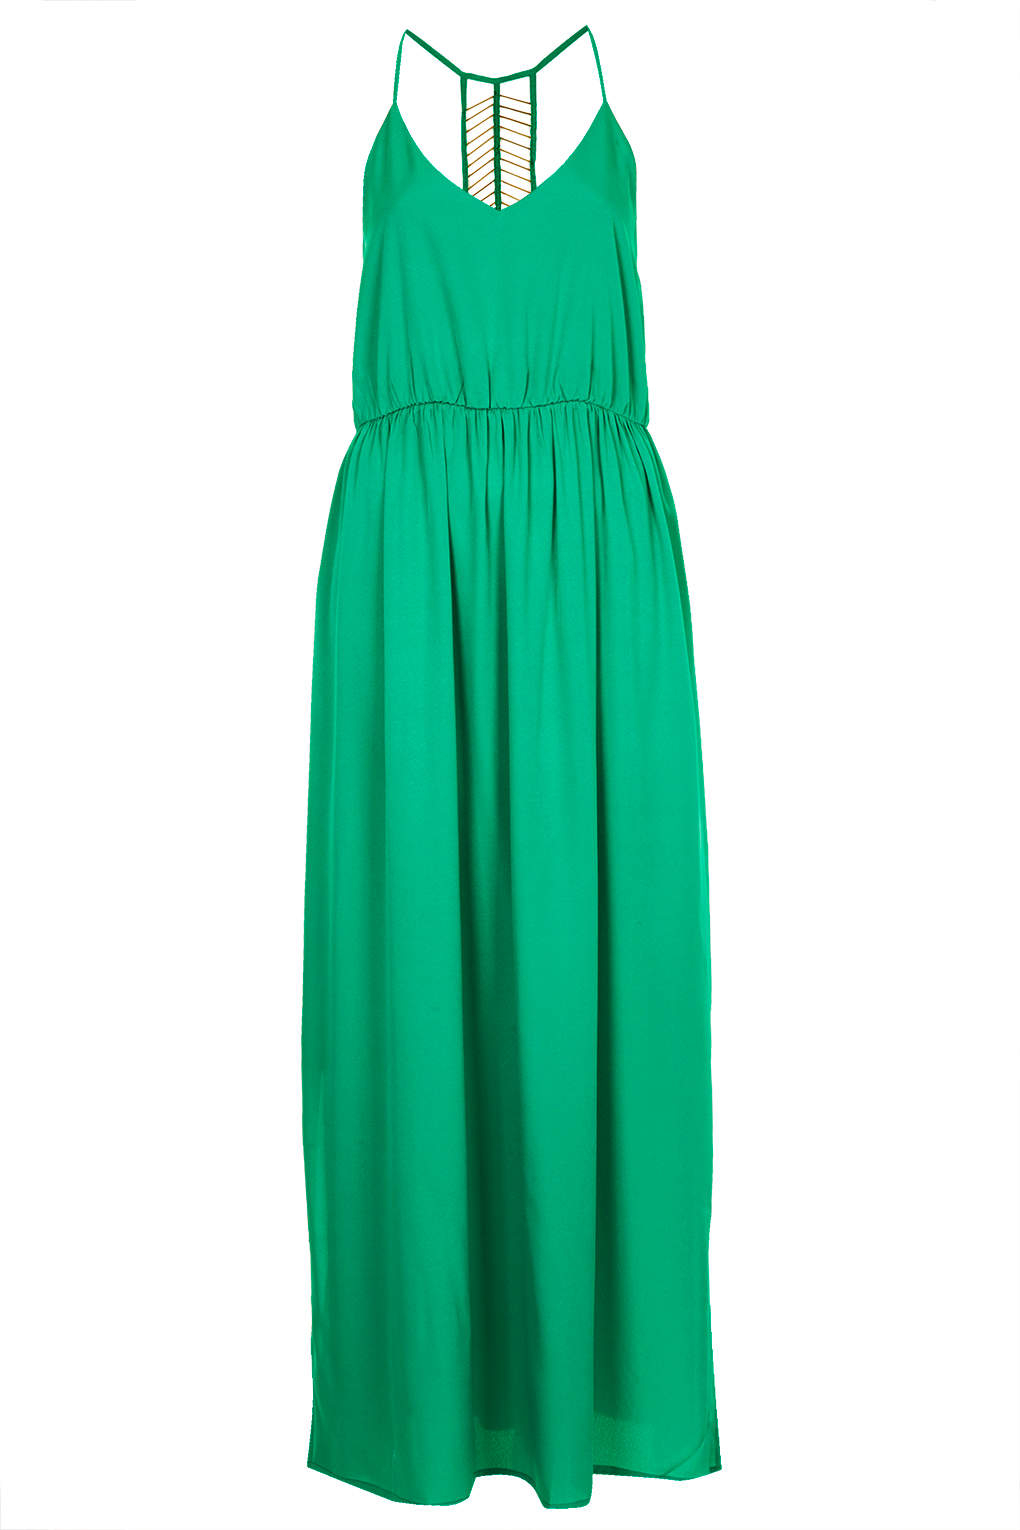 Lyst - Topshop Jewel Green Beaded Back Maxi Dress in Green